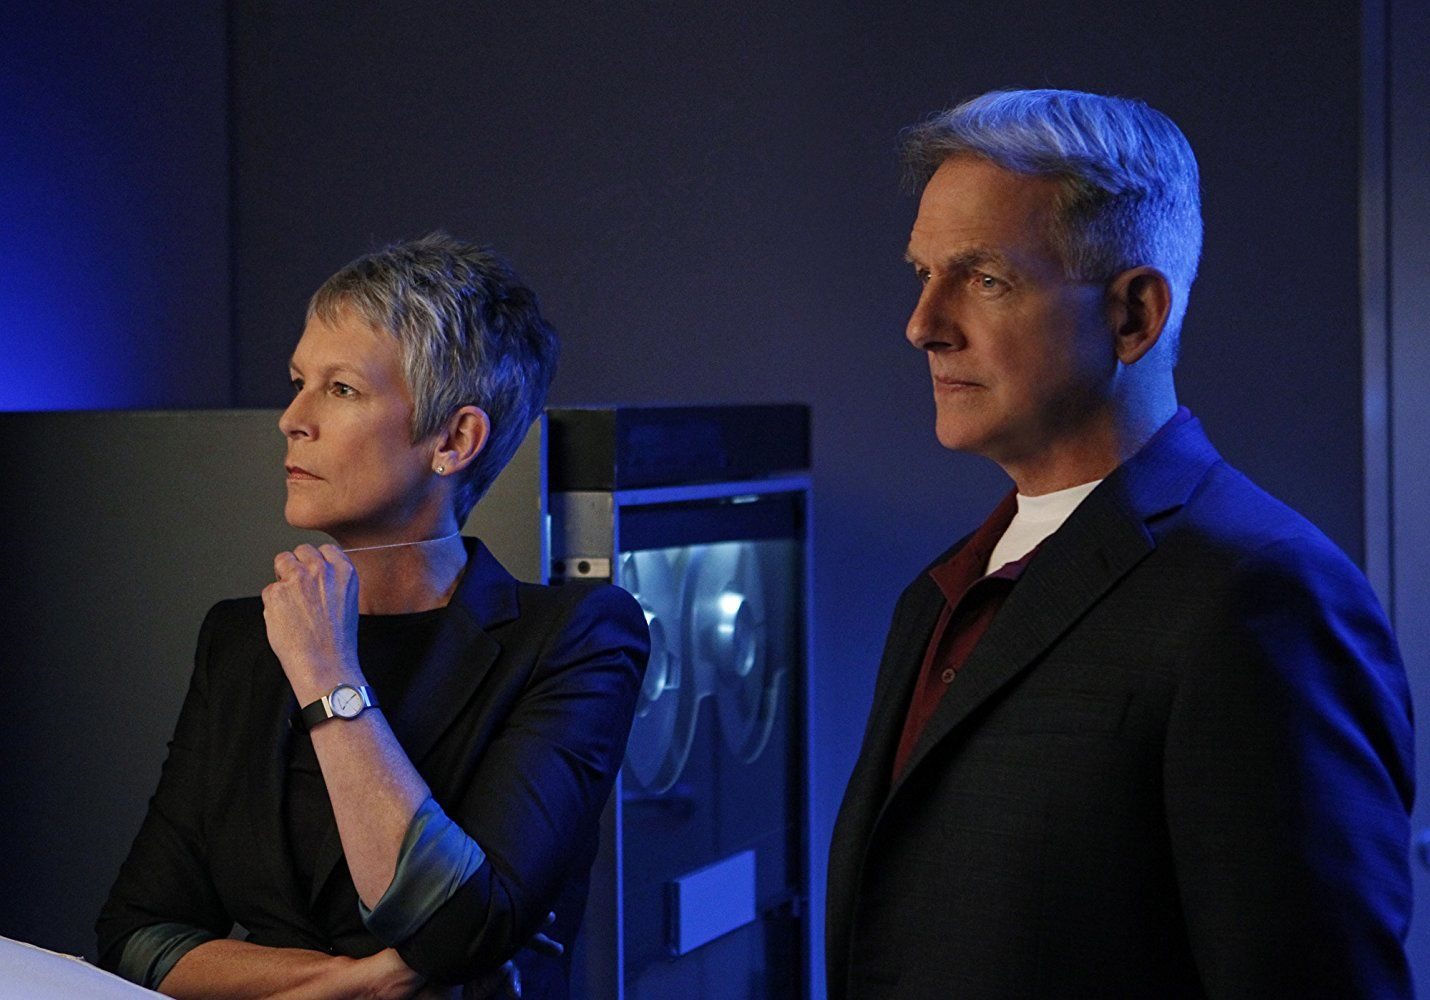 Jamie Lee Curtis and Mark Harmon on NCIS.